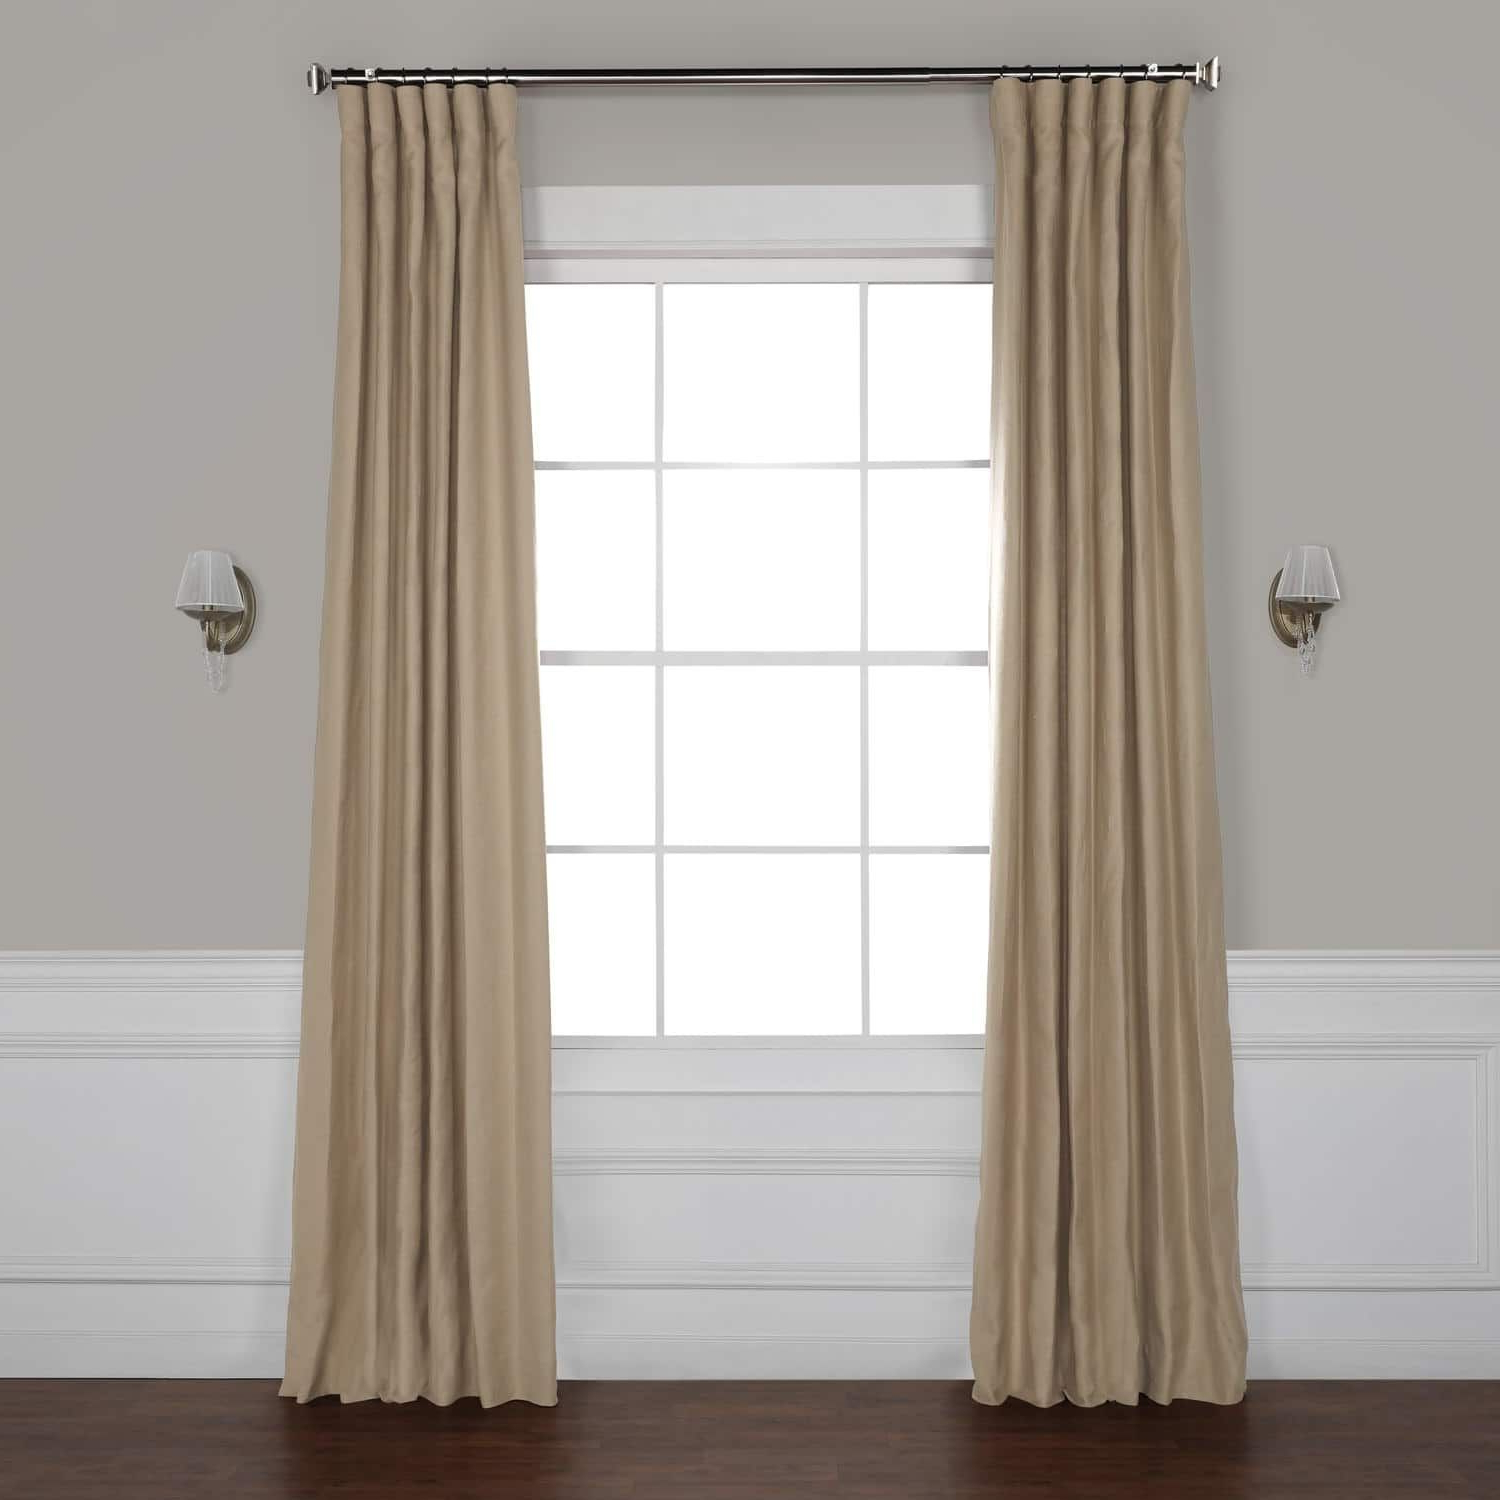 Exclusive Fabrics French Linen Lined Curtain Panel With Regard To Latest French Linen Lined Curtain Panels (View 4 of 20)